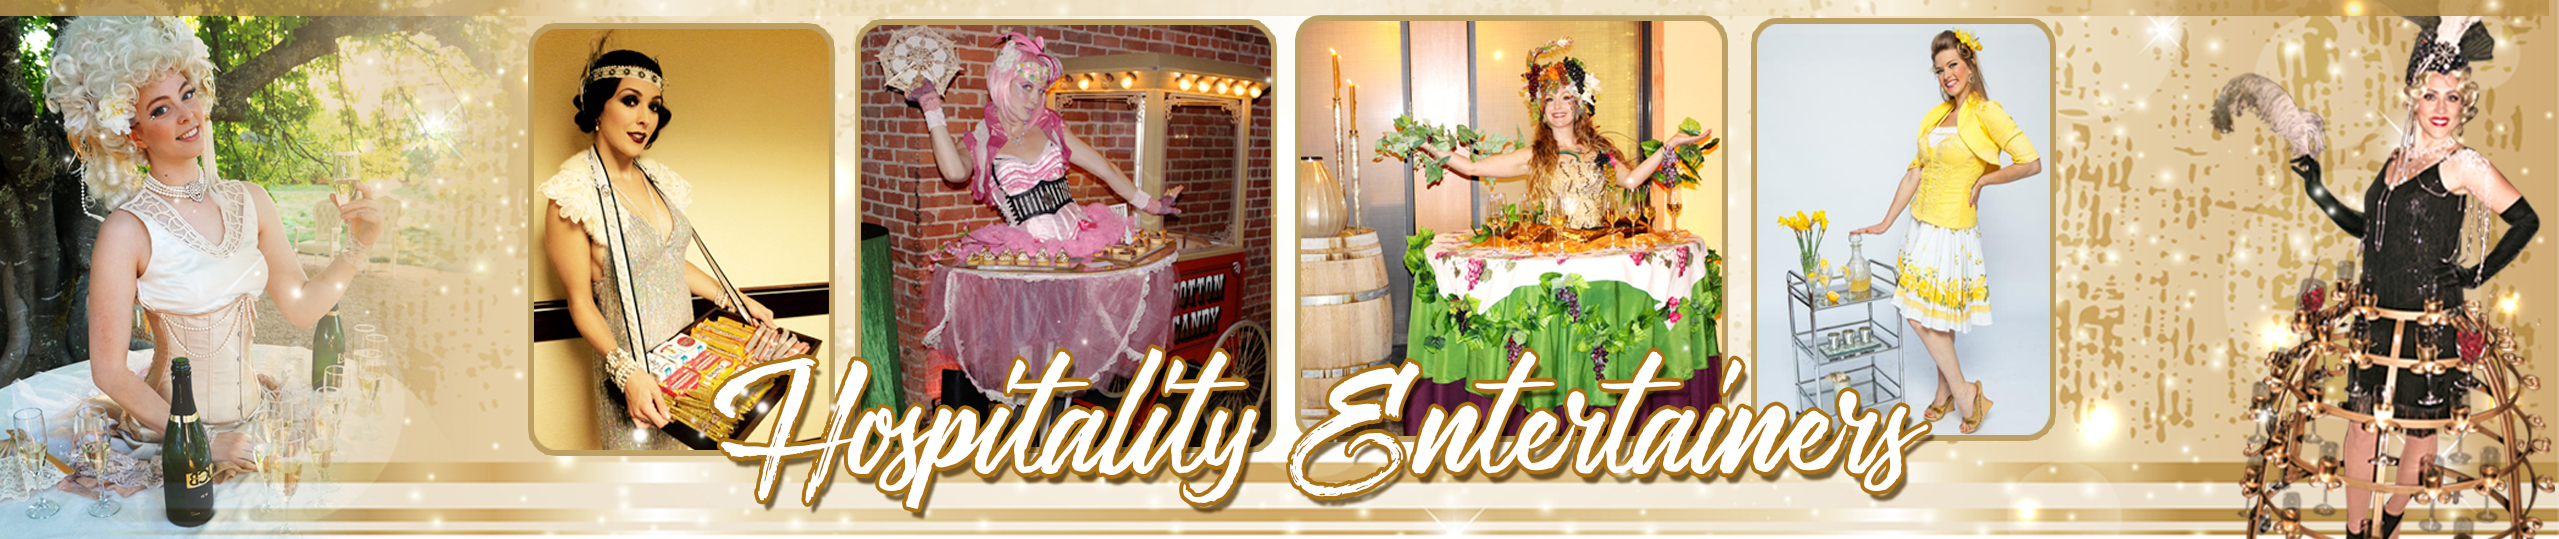 Hospitality entertainers tray ladies living tables champagne skirts by Catalyst Arts